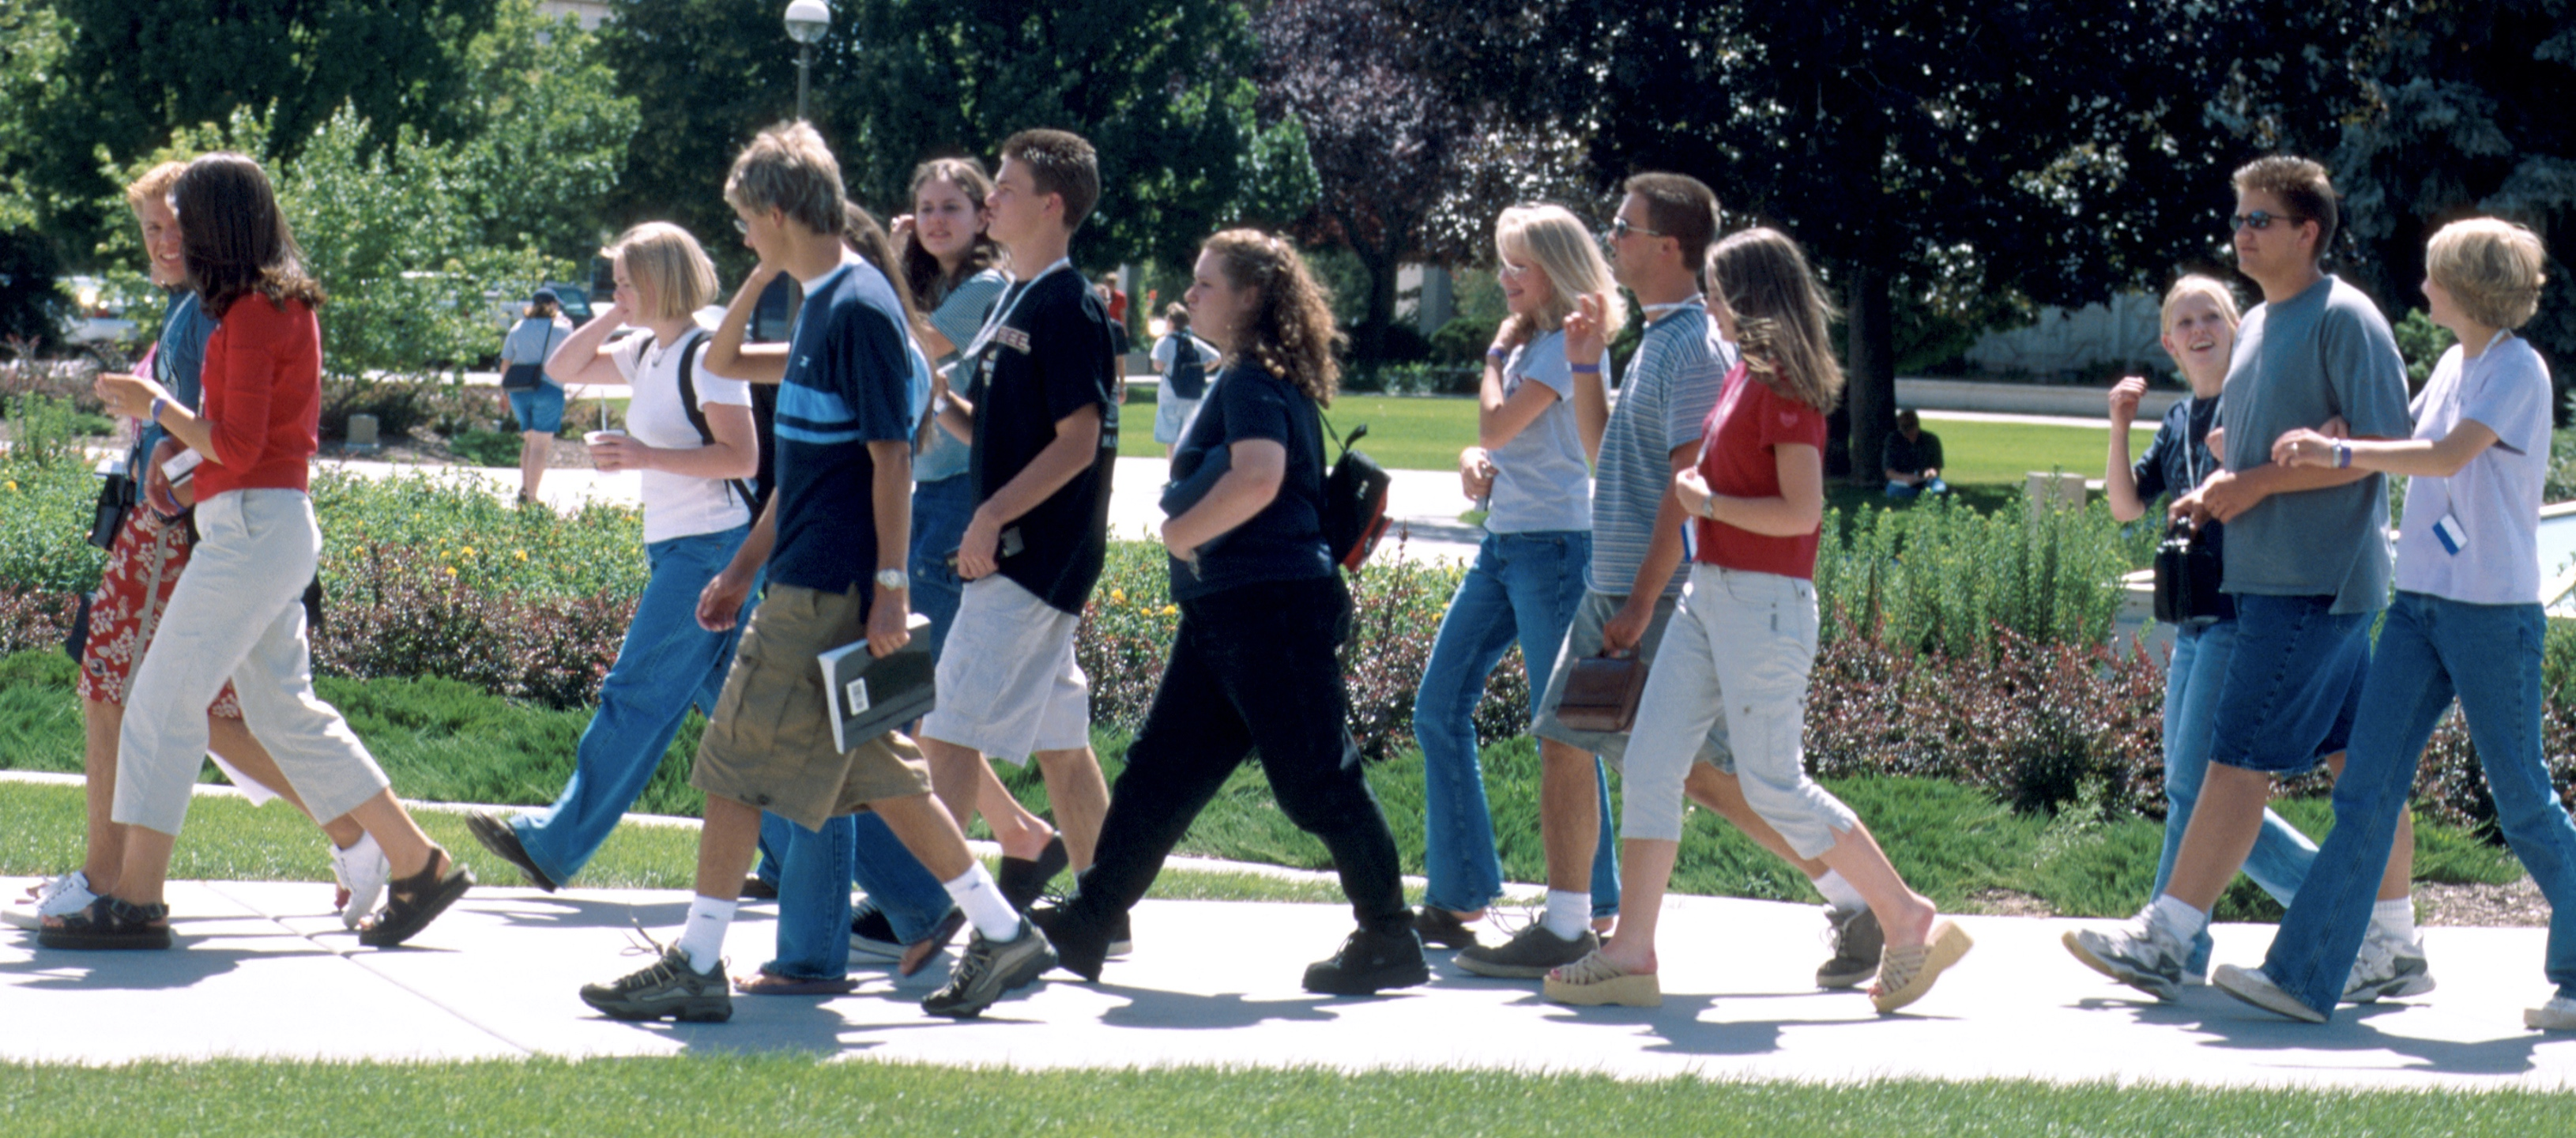 A group walks on the sidewalk together at Especially for Youth in 2000.